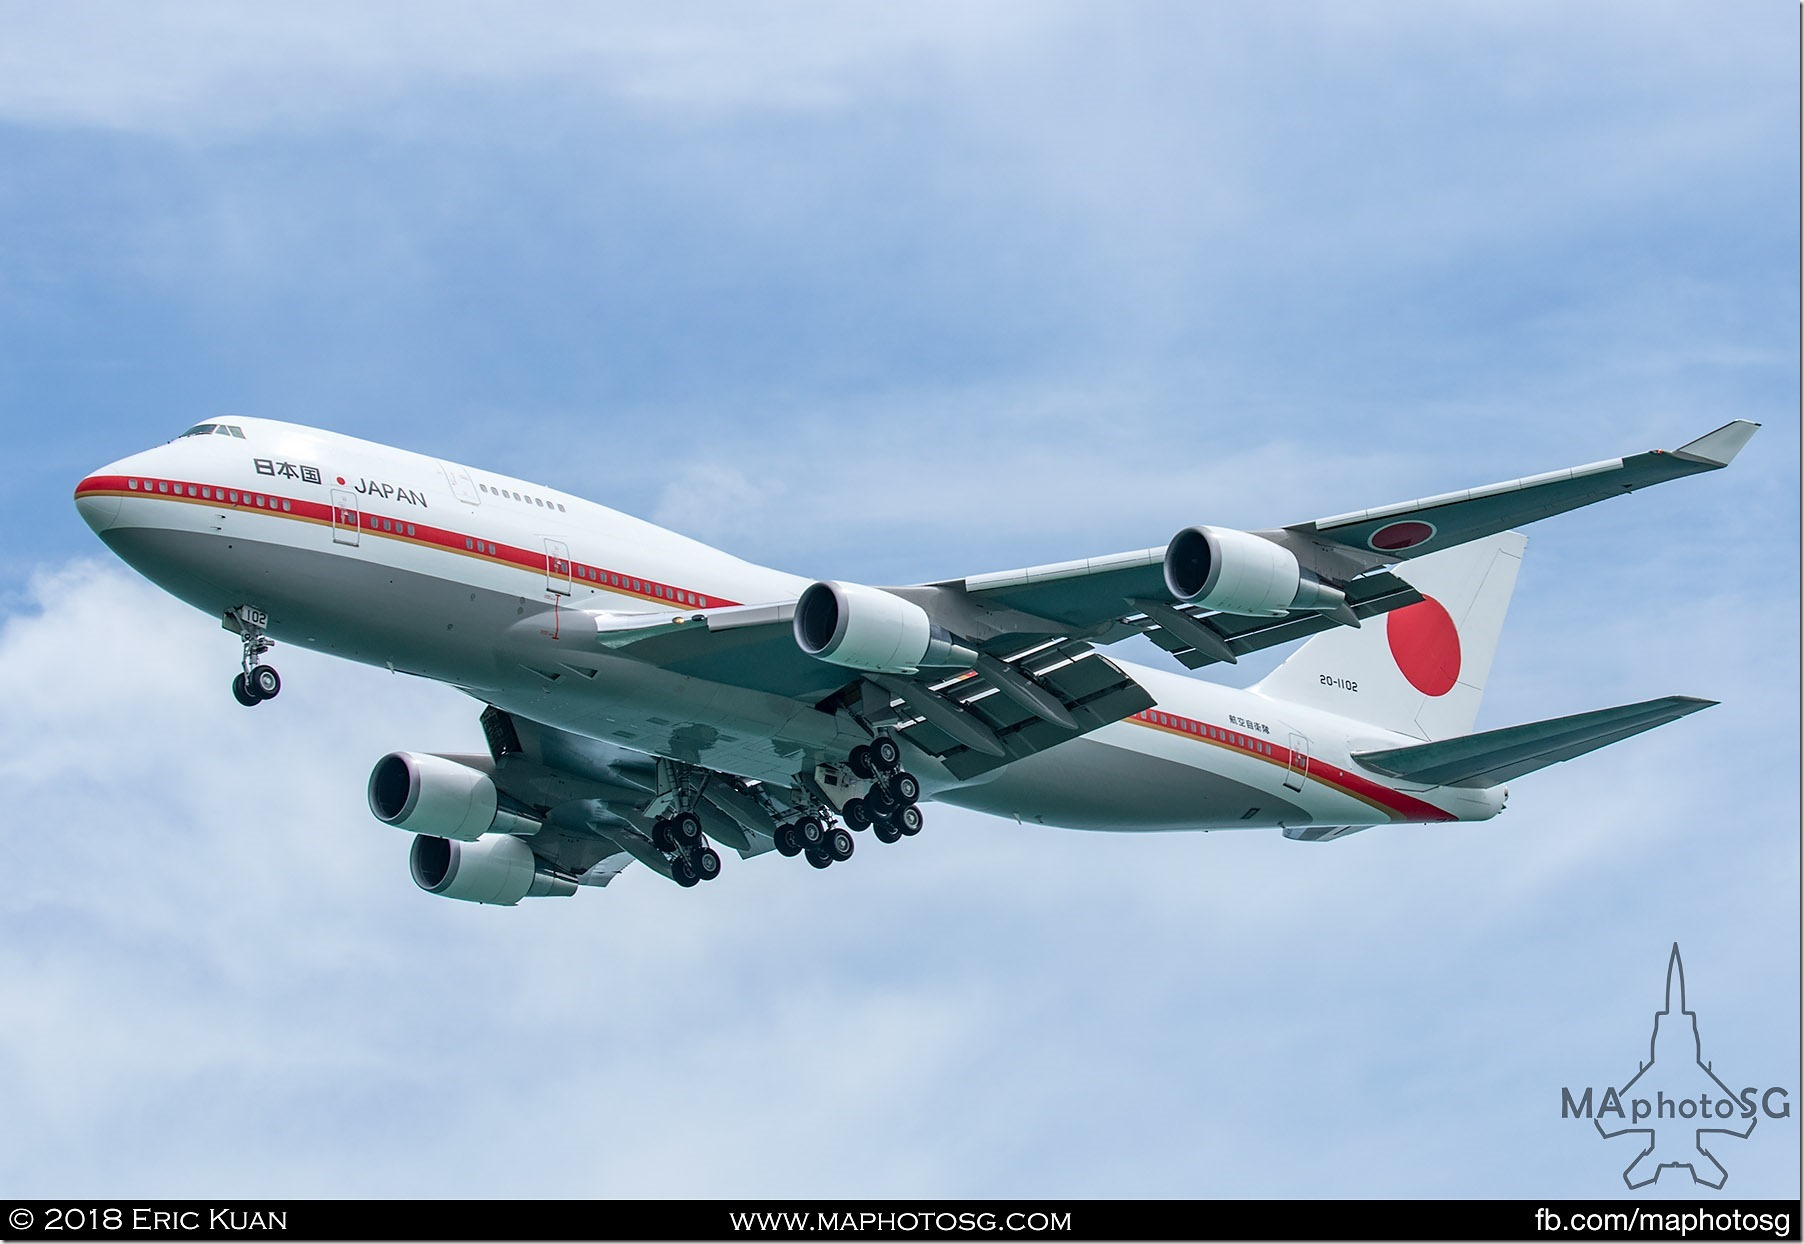 05. Japan Air Force Boeing 747